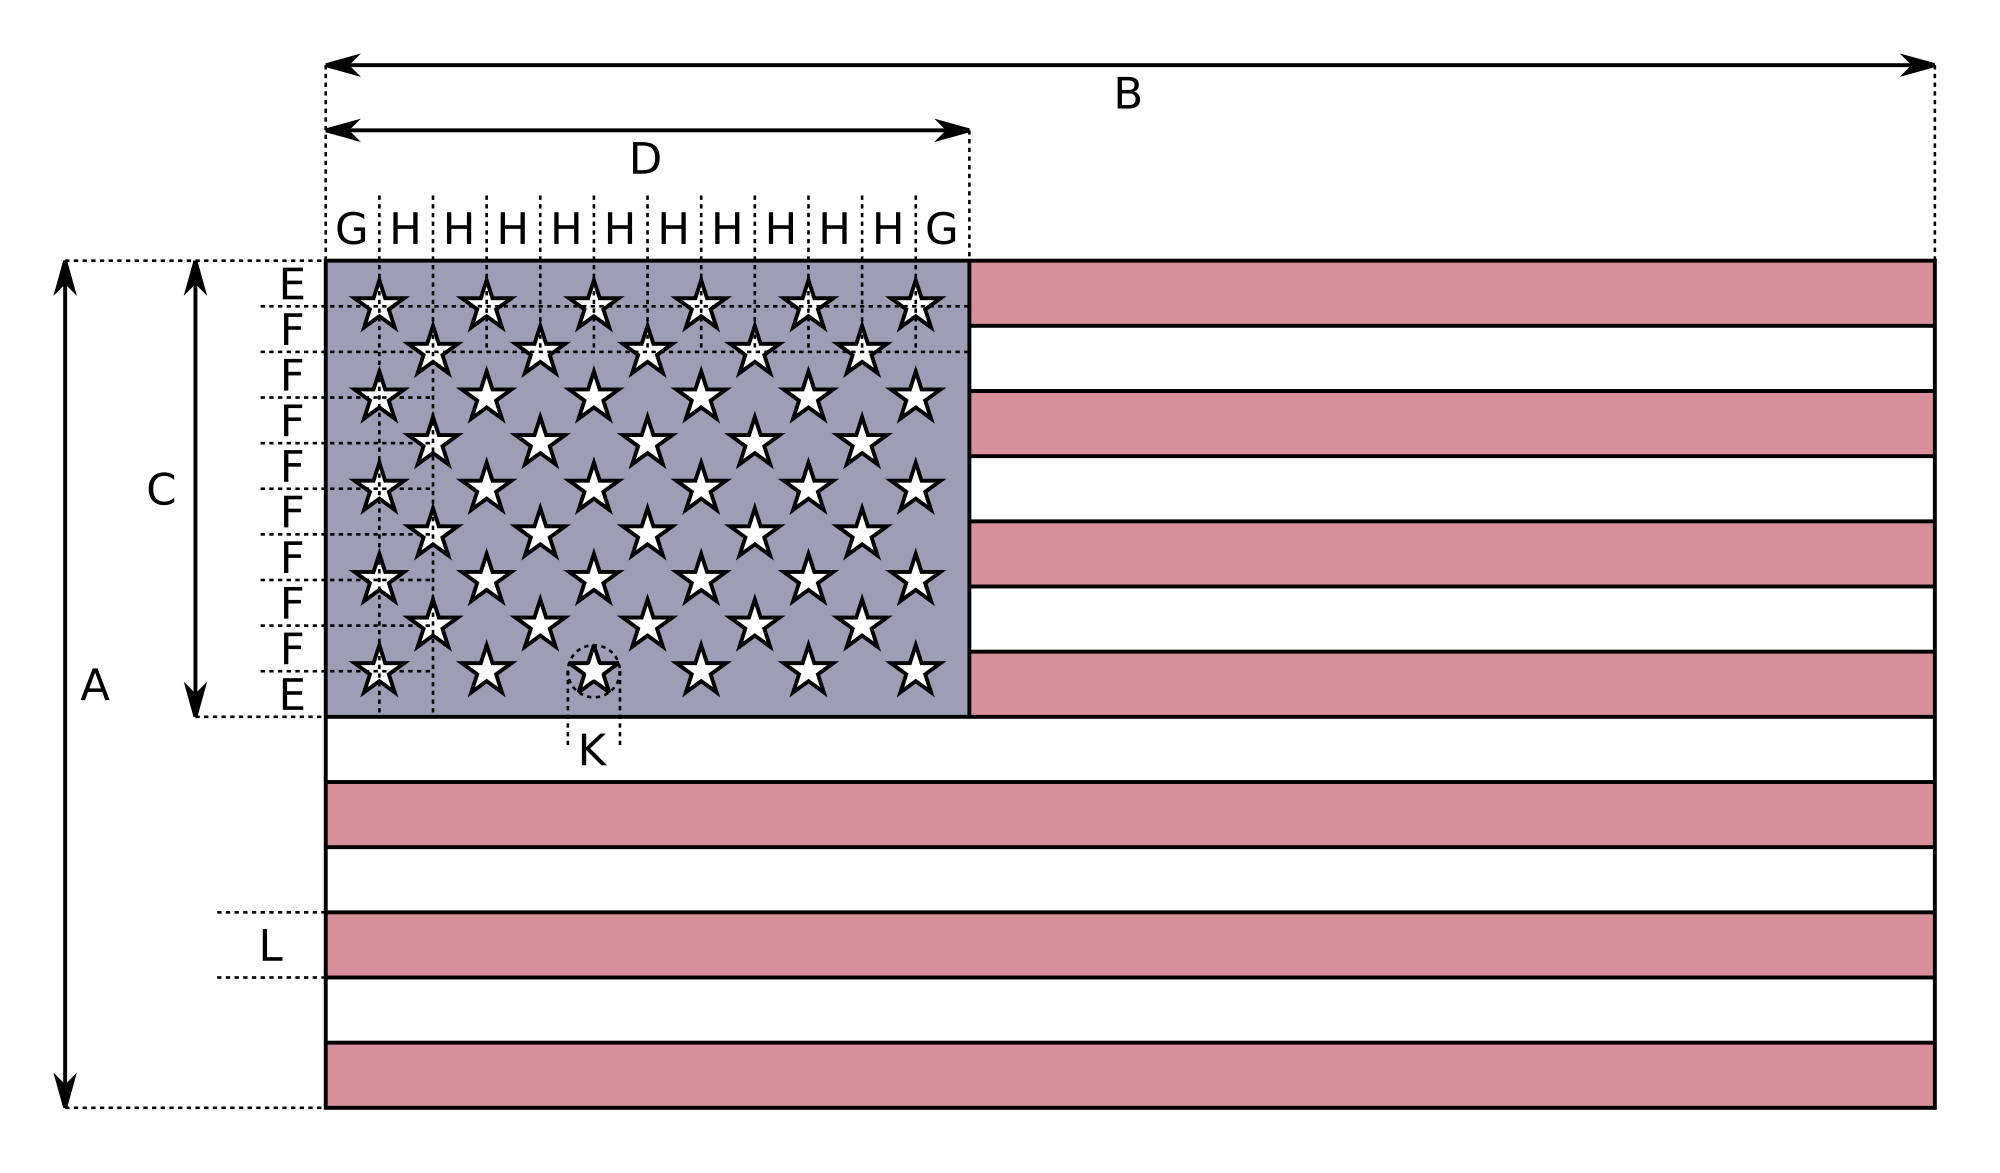 Svg specification eu flag. File of the united